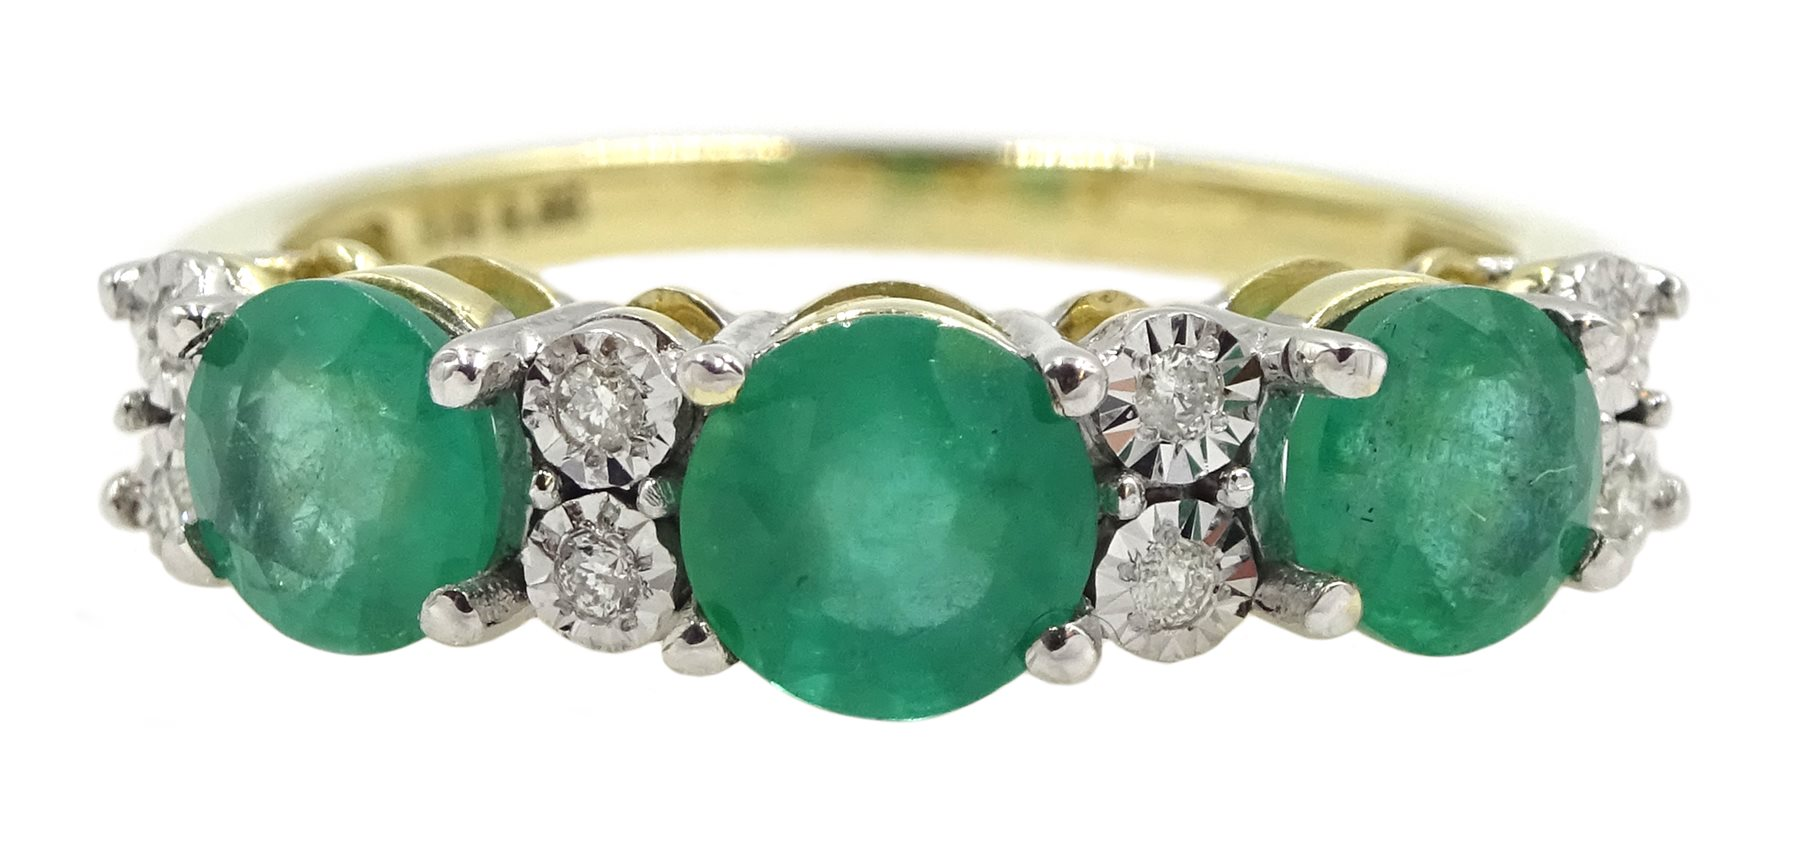 9ct gold round emerald and diamond ring, stamped 375, total emerald weight approx 1.30 carat